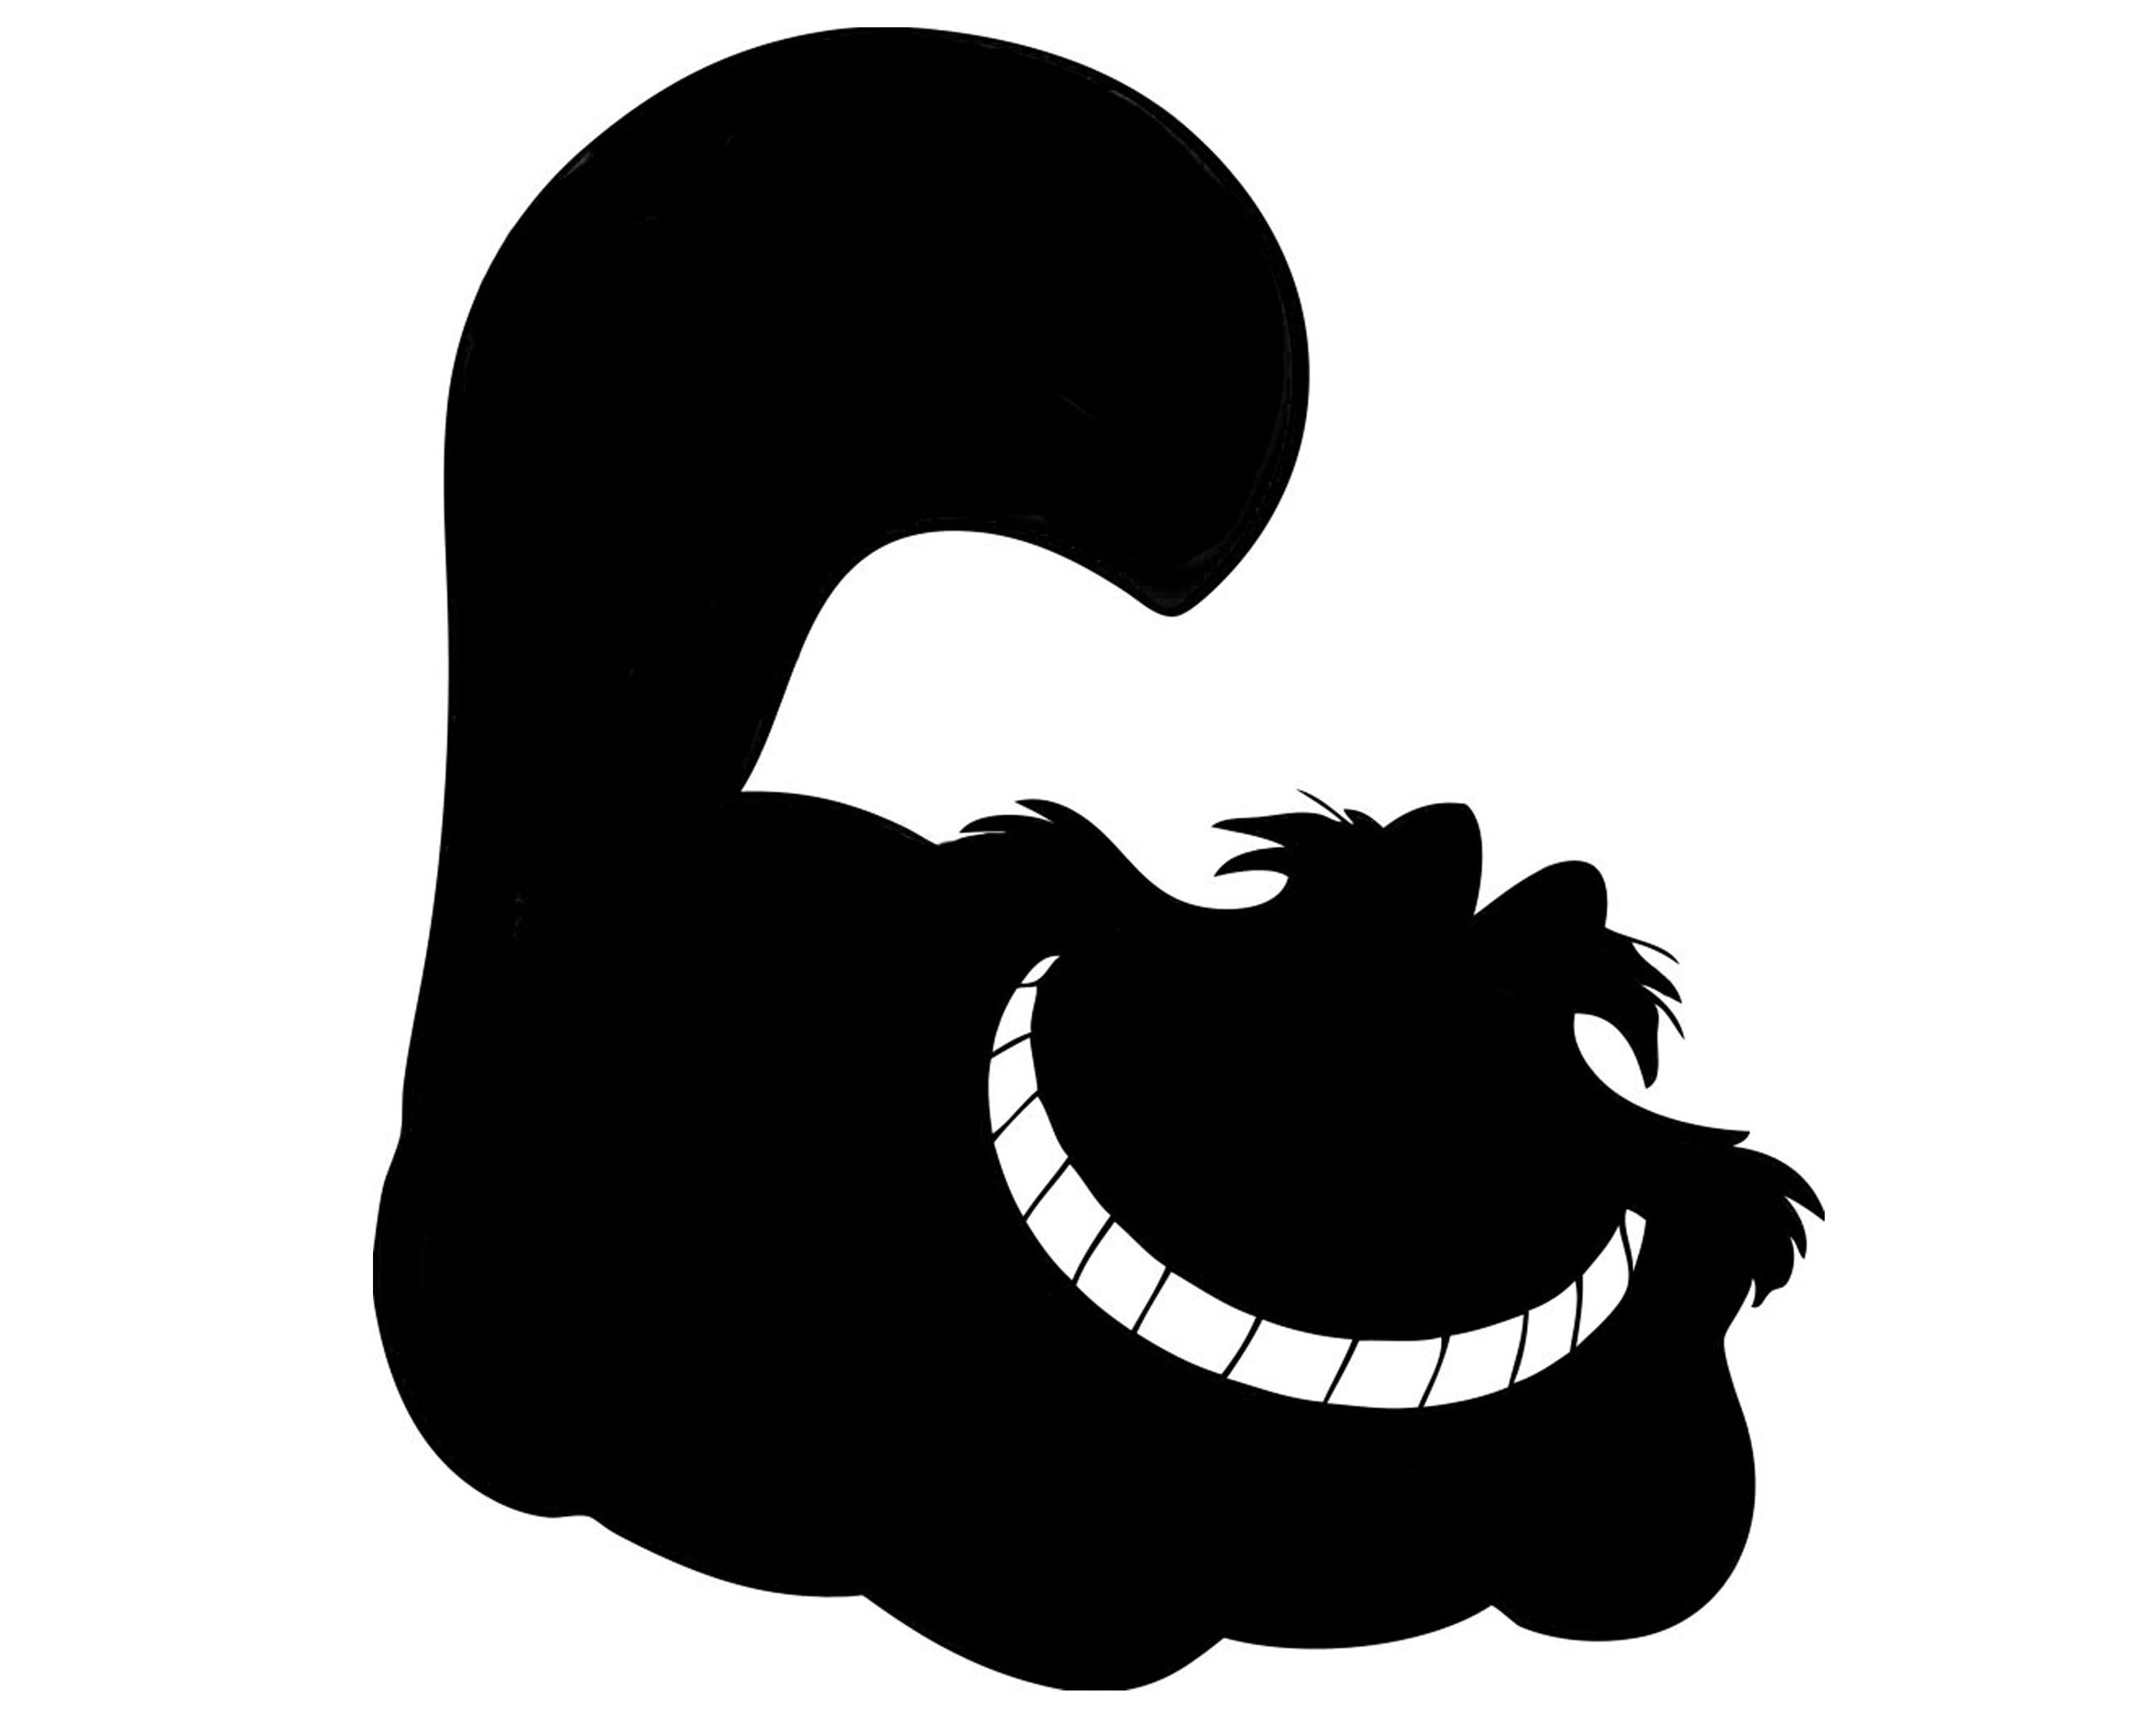 3000x2400 Alice In Wonderland Cheshire Cat Silhouette Using Iphone